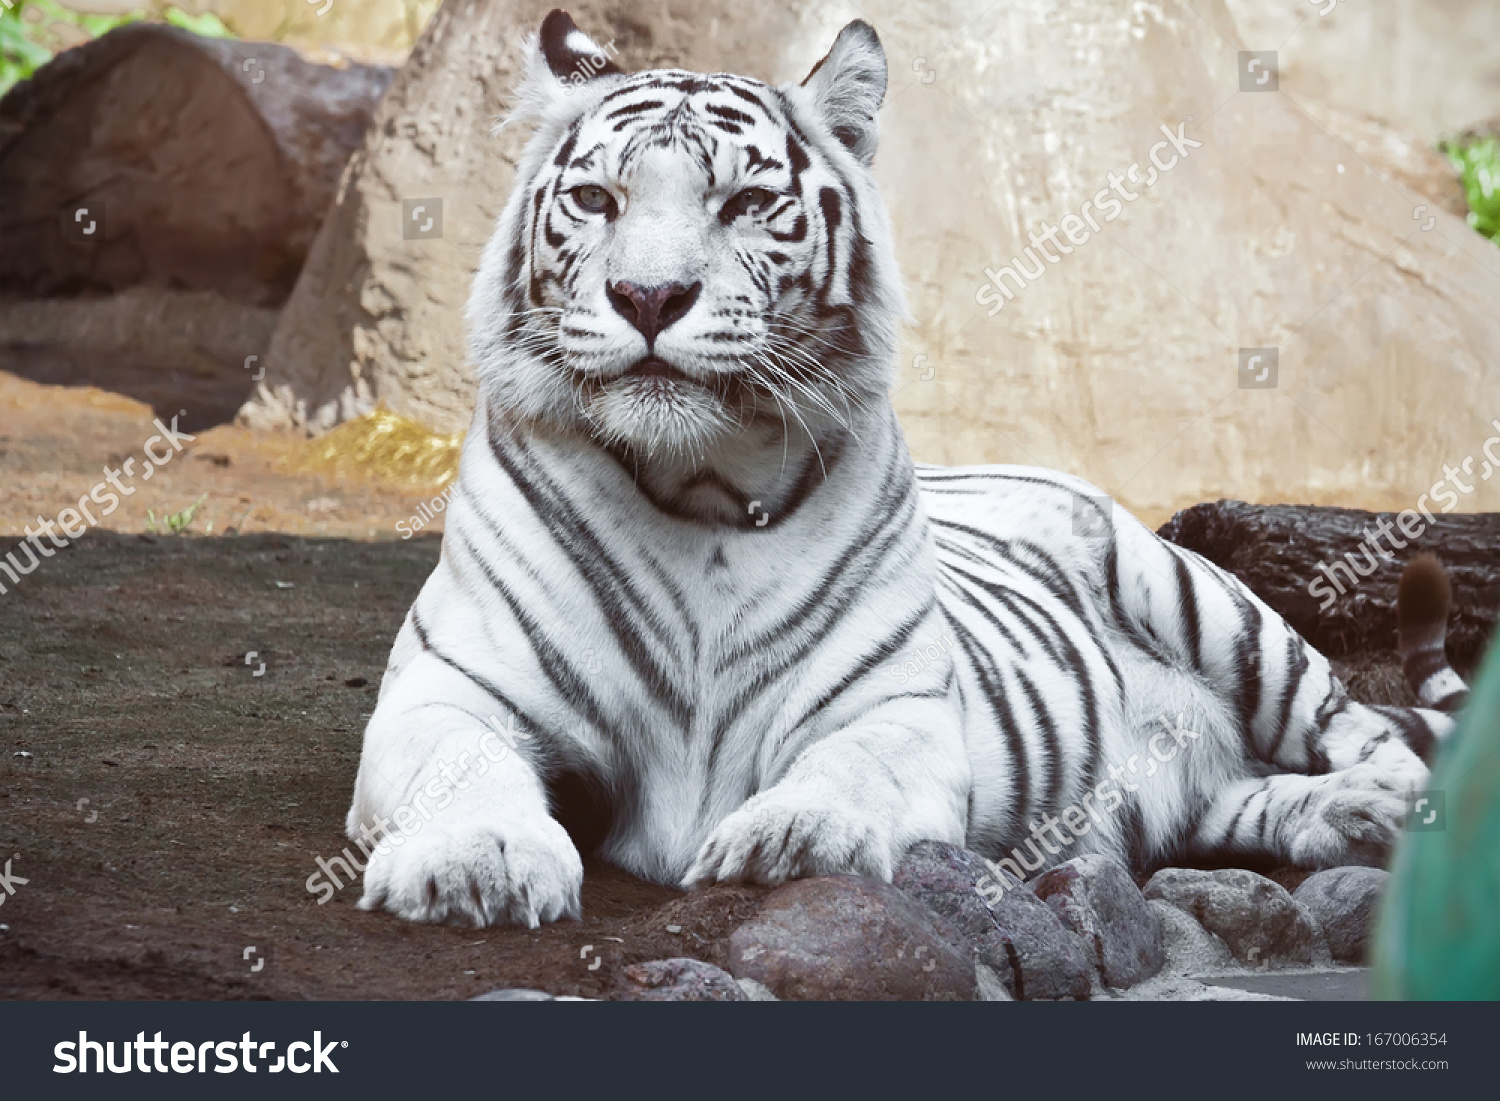 Beautiful close-up portrait of majestic White Tiger #167006354